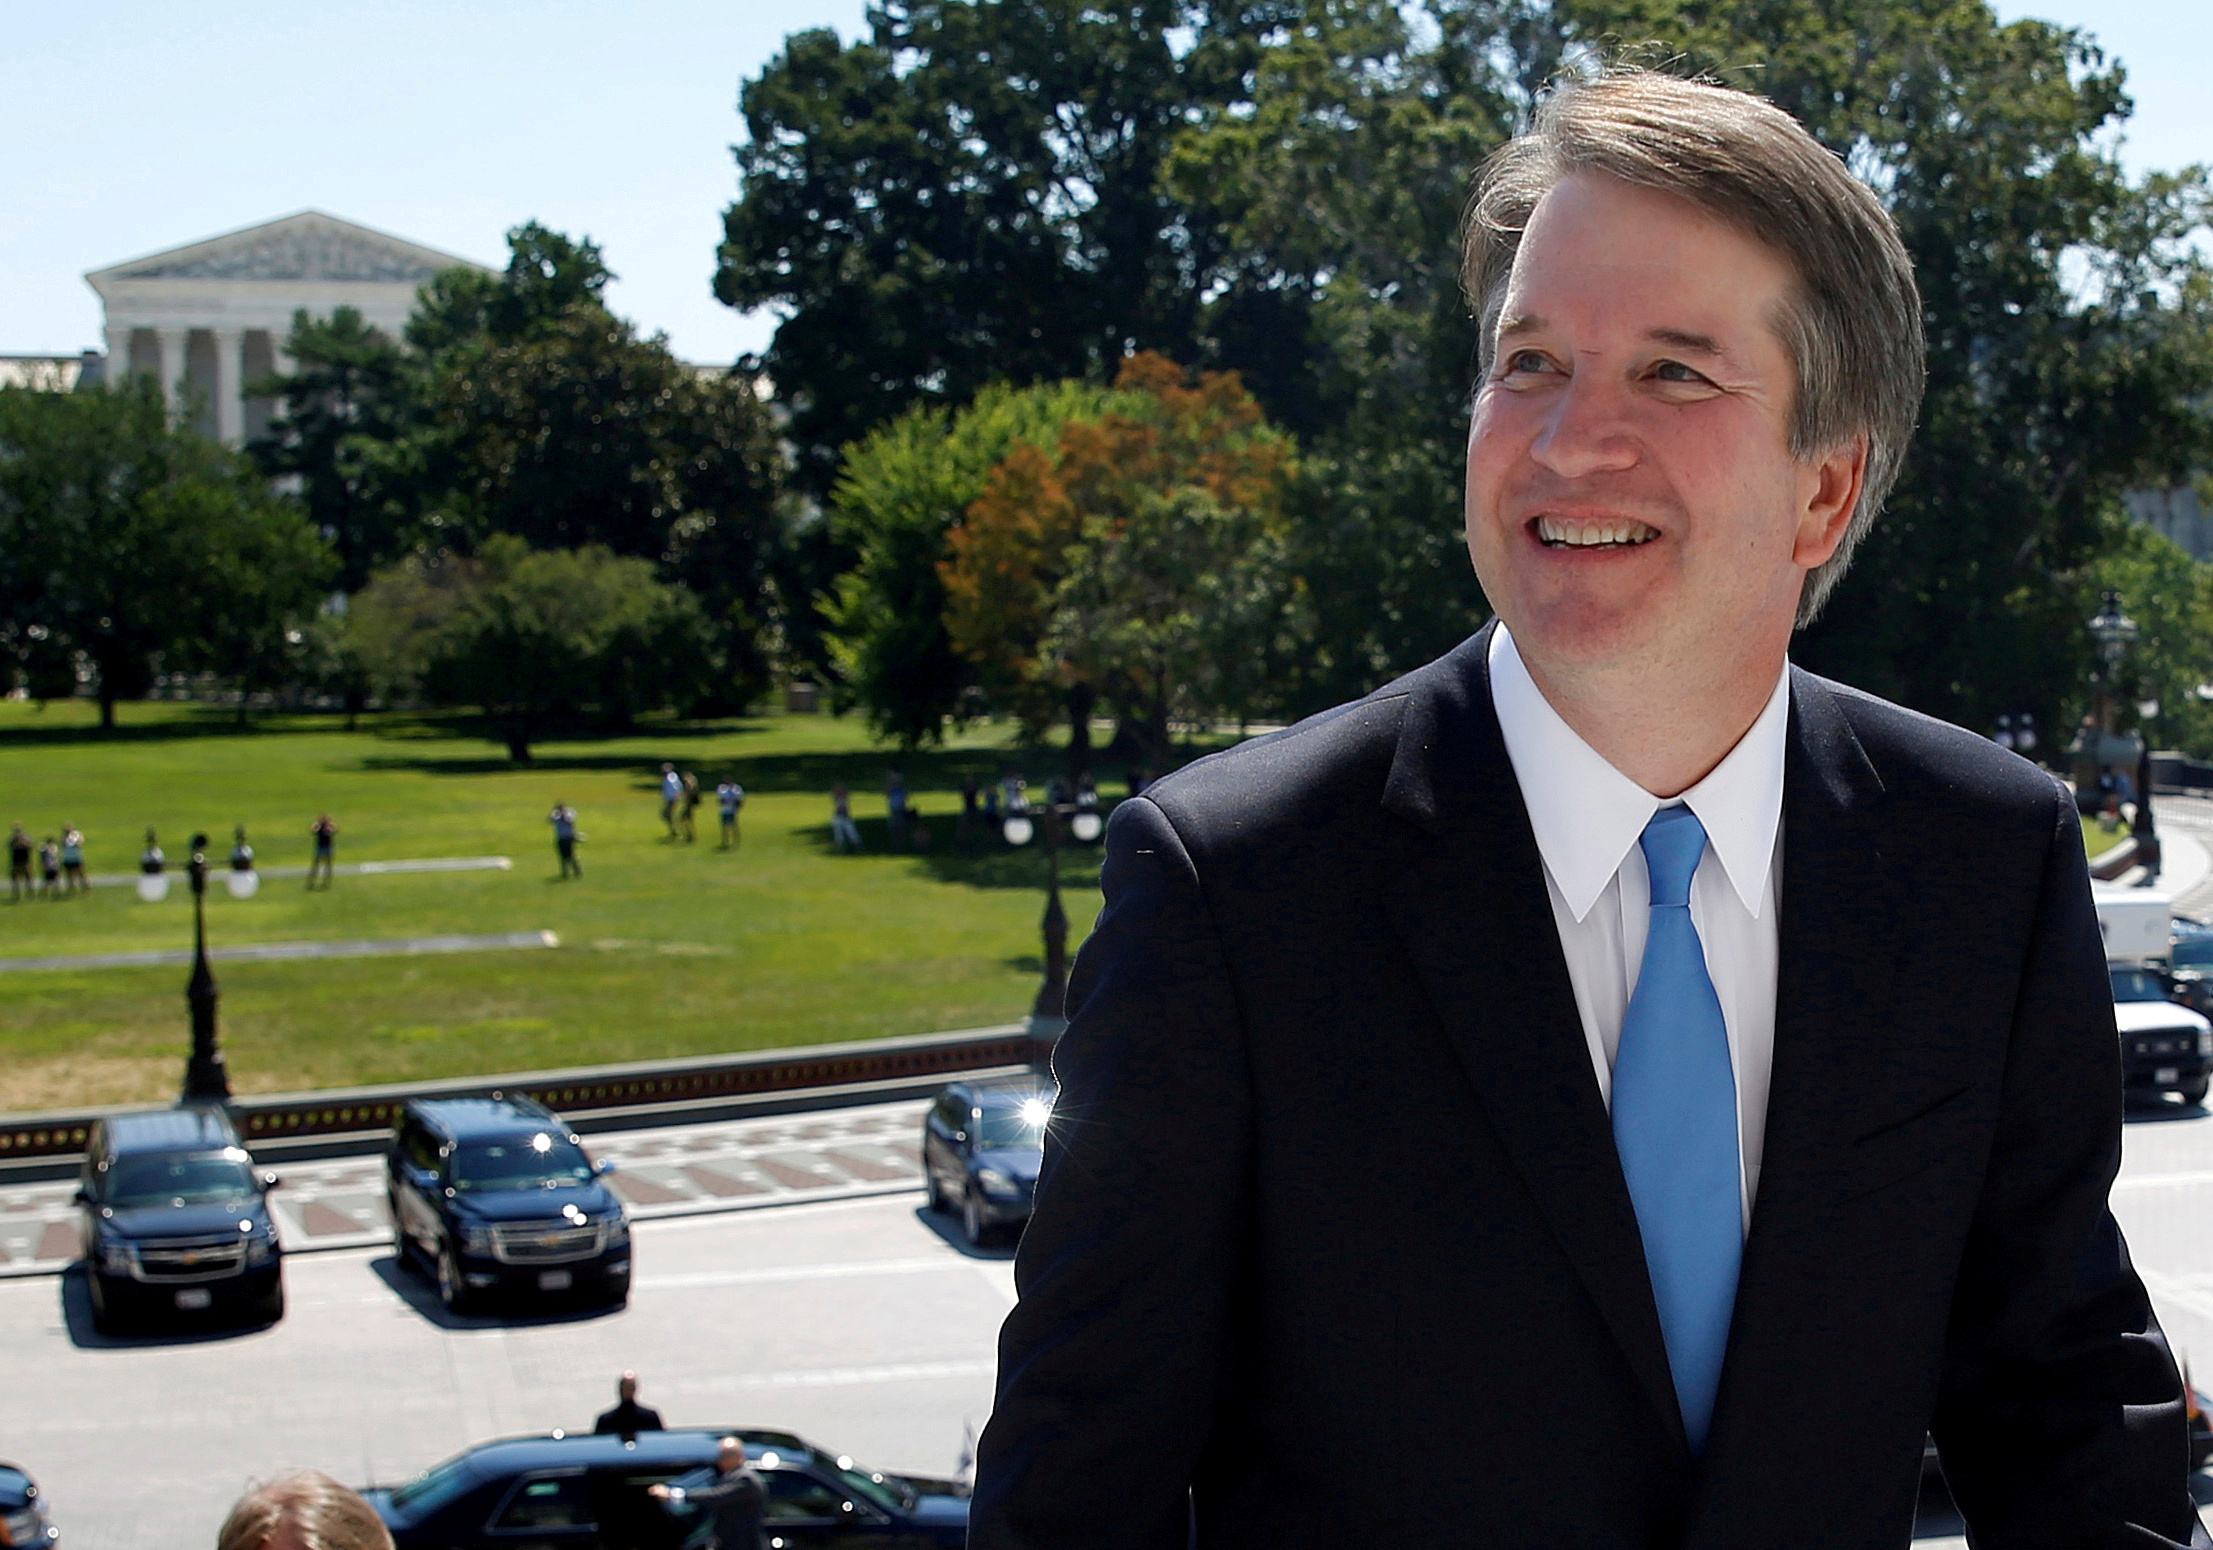 FILE PHOTO:    With the U.S. Supreme Court building in the background, Supreme Court nominee judge Brett Kavanaugh arrives prior to meeting with Senate Majority Leader Mitch McConnell on Capitol Hill in Washington, U.S., July 10, 2018. REUTERS/Joshua Roberts/File Photo - RC193B83C020